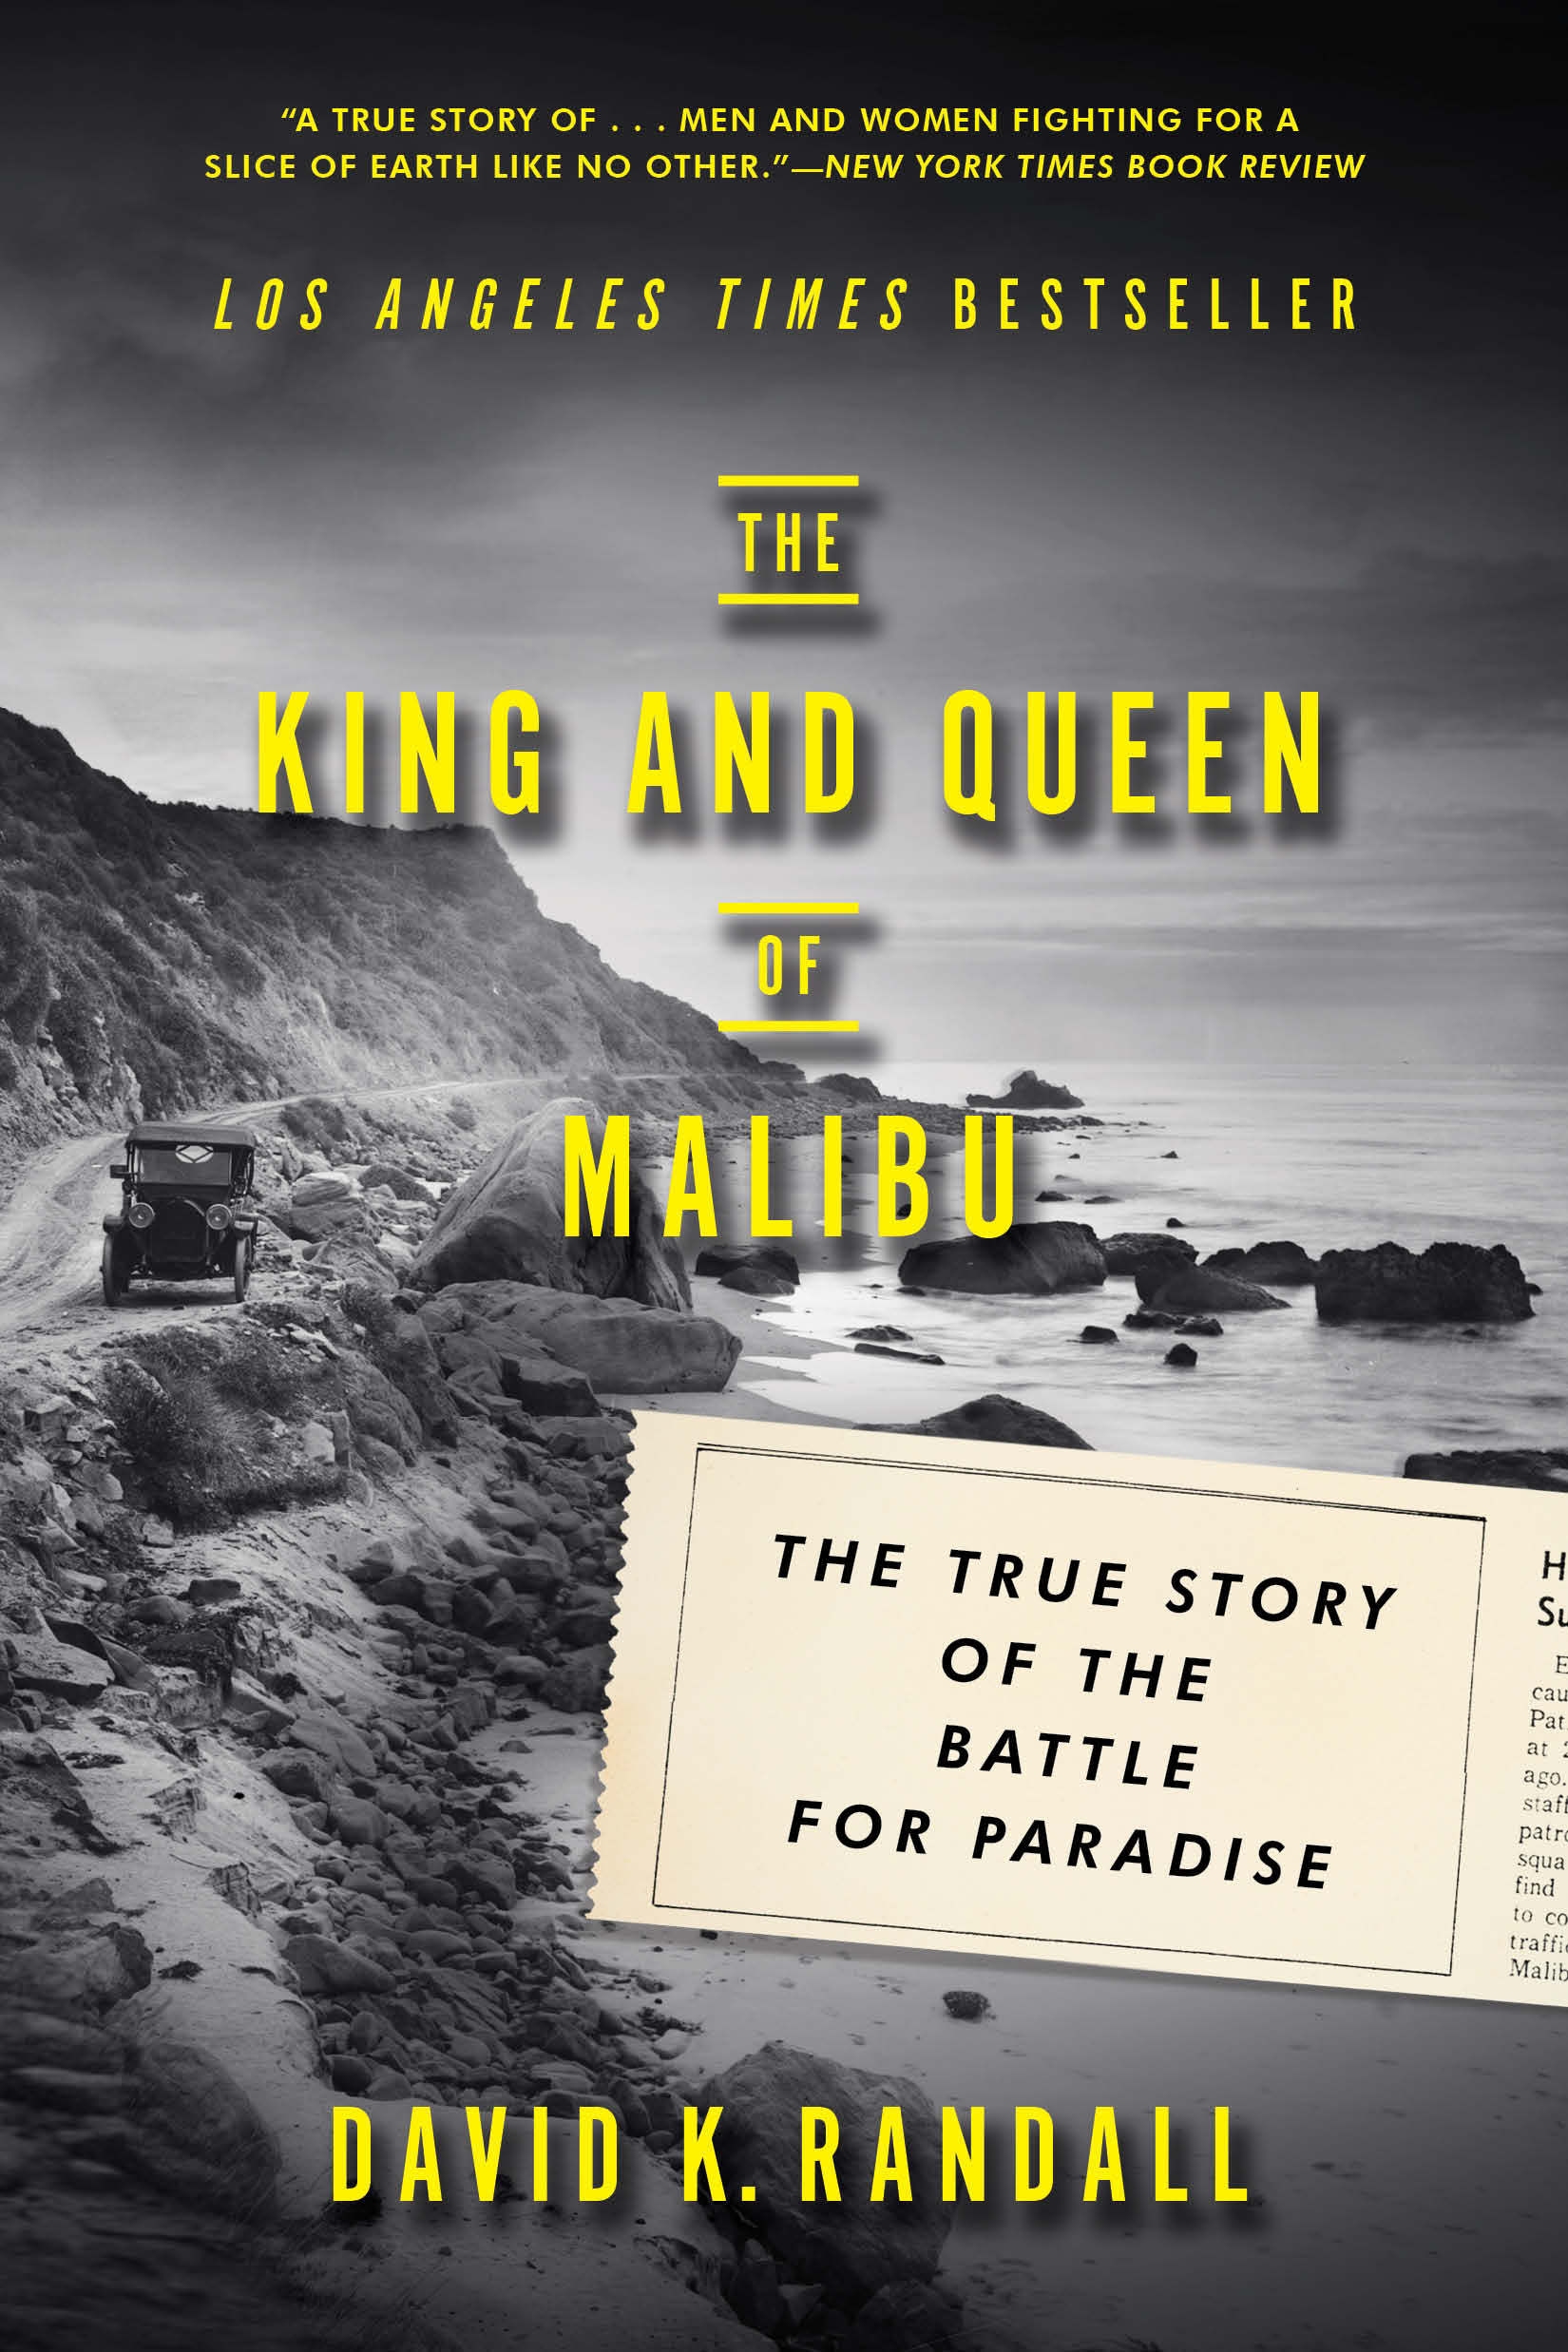 THE KING AND QUEEN OF MALIBU - The true story of the battle for paradise.